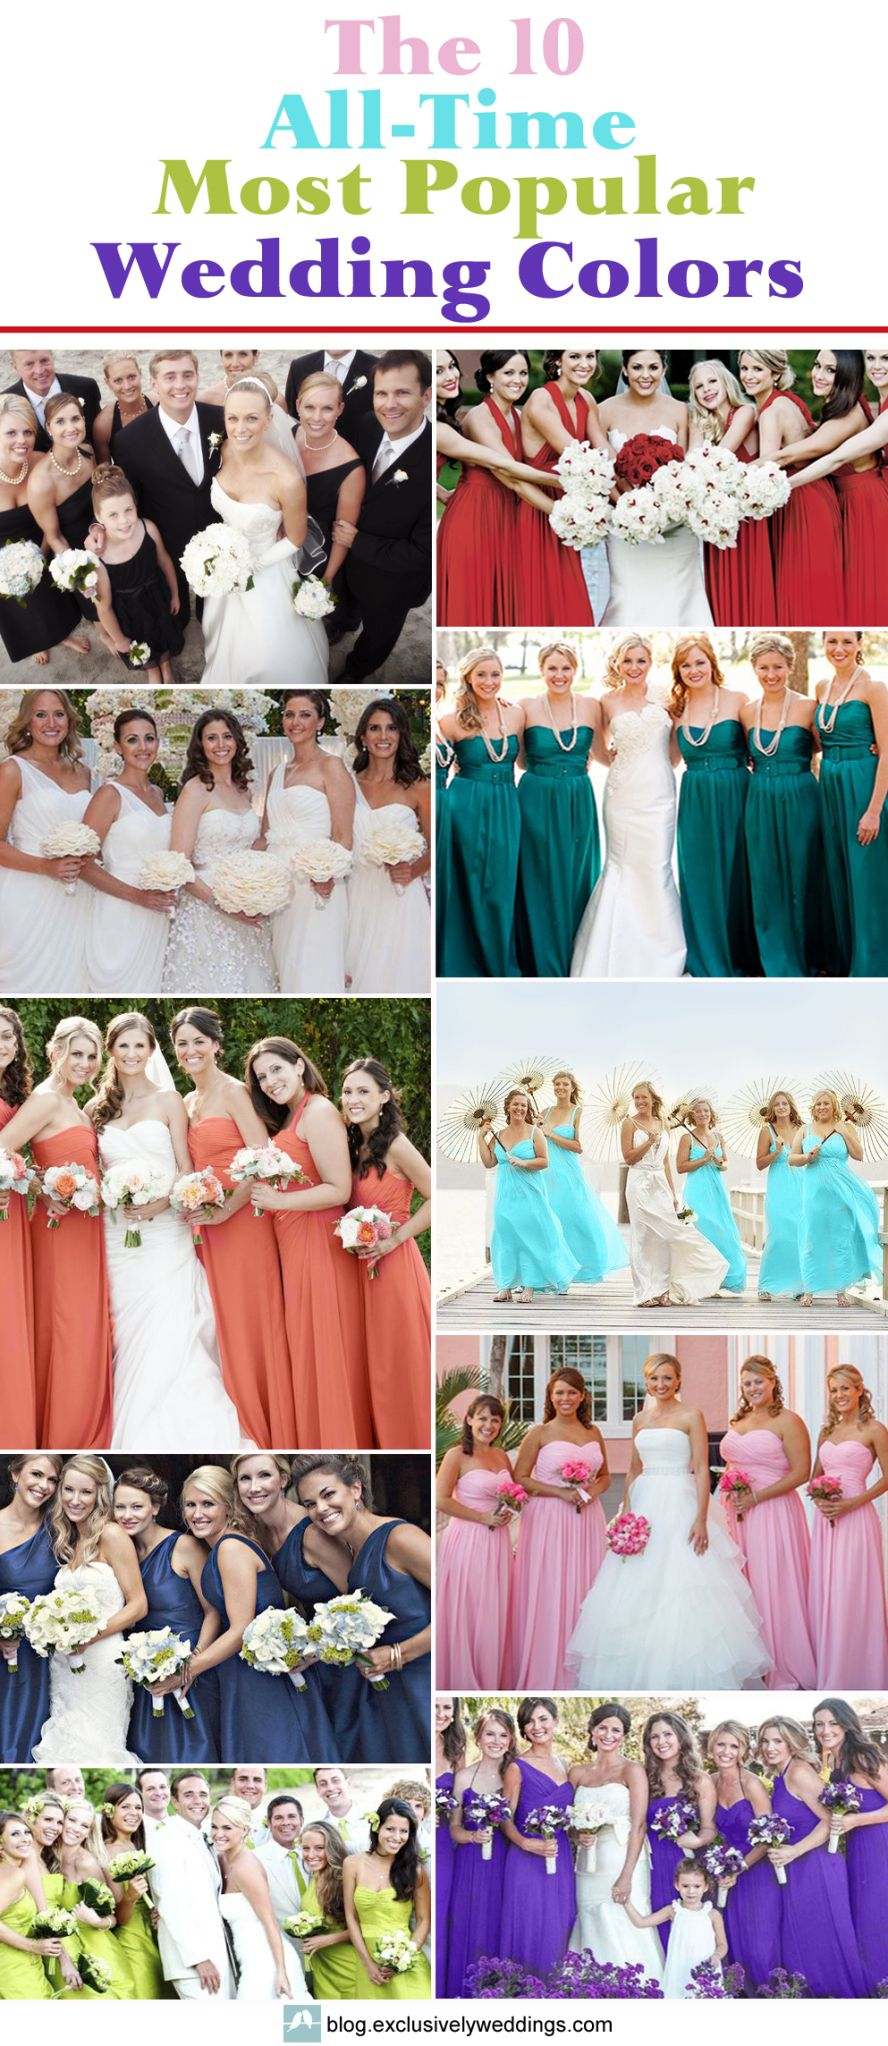 e40140176788 The 10 All-Time Most Popular Wedding Colors | Wedding Planning ...